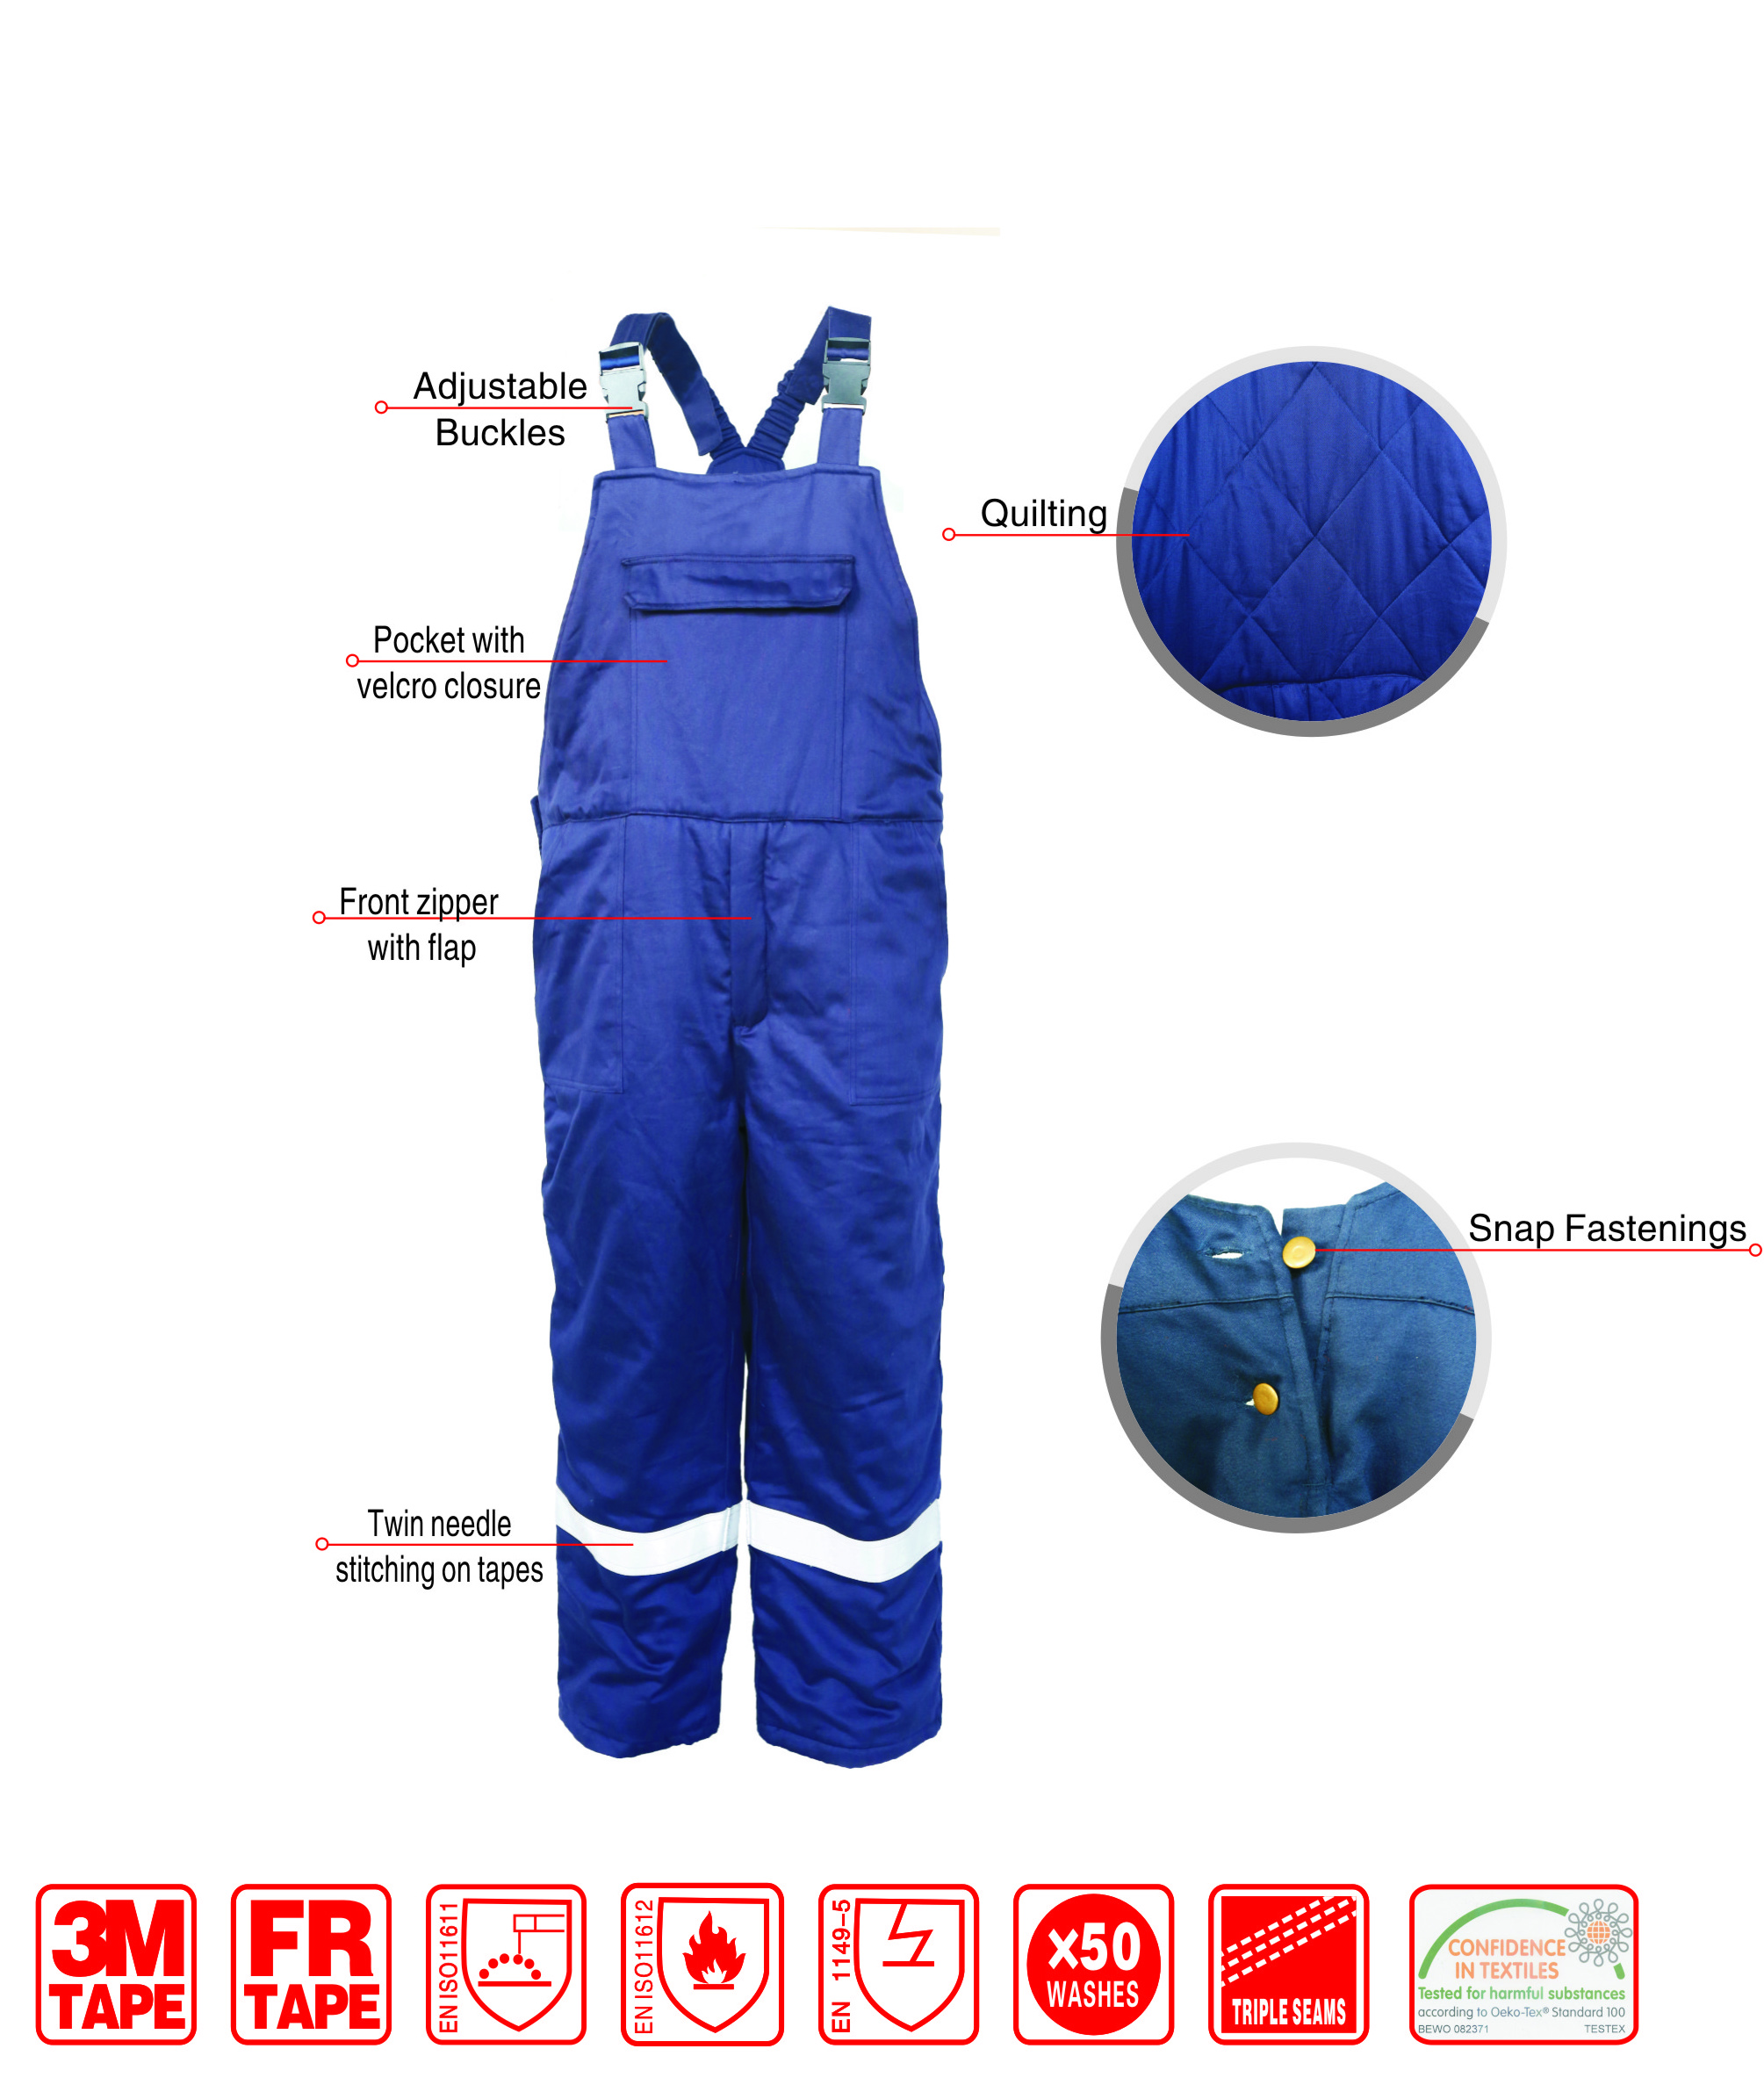 Fr Anti Static Bib Pants